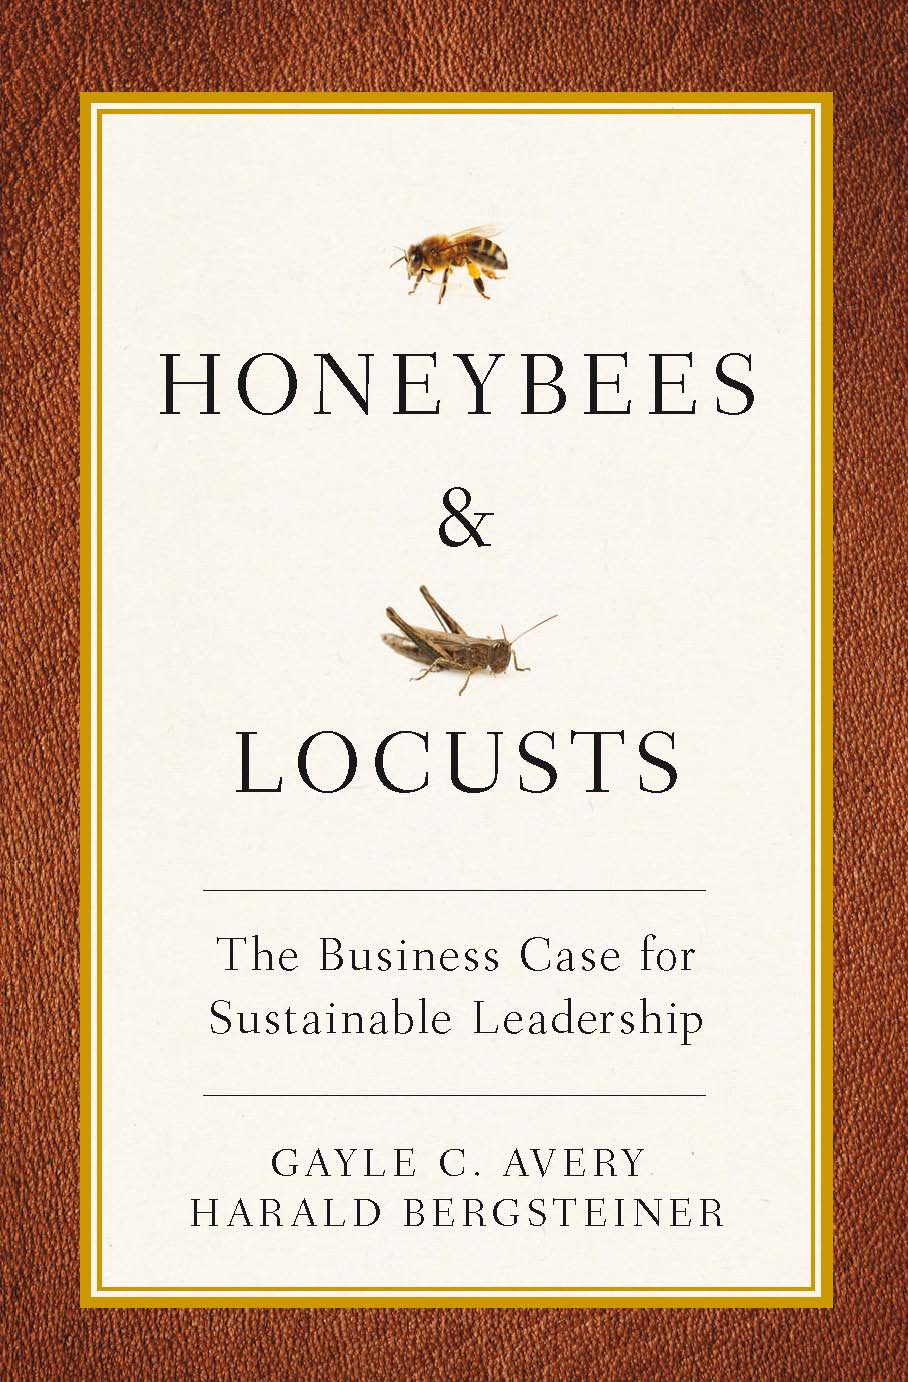 Honeybees And Locusts: The Business Case For Sustainable Leadership By: Gayle Avery and Harald Bergsteiner